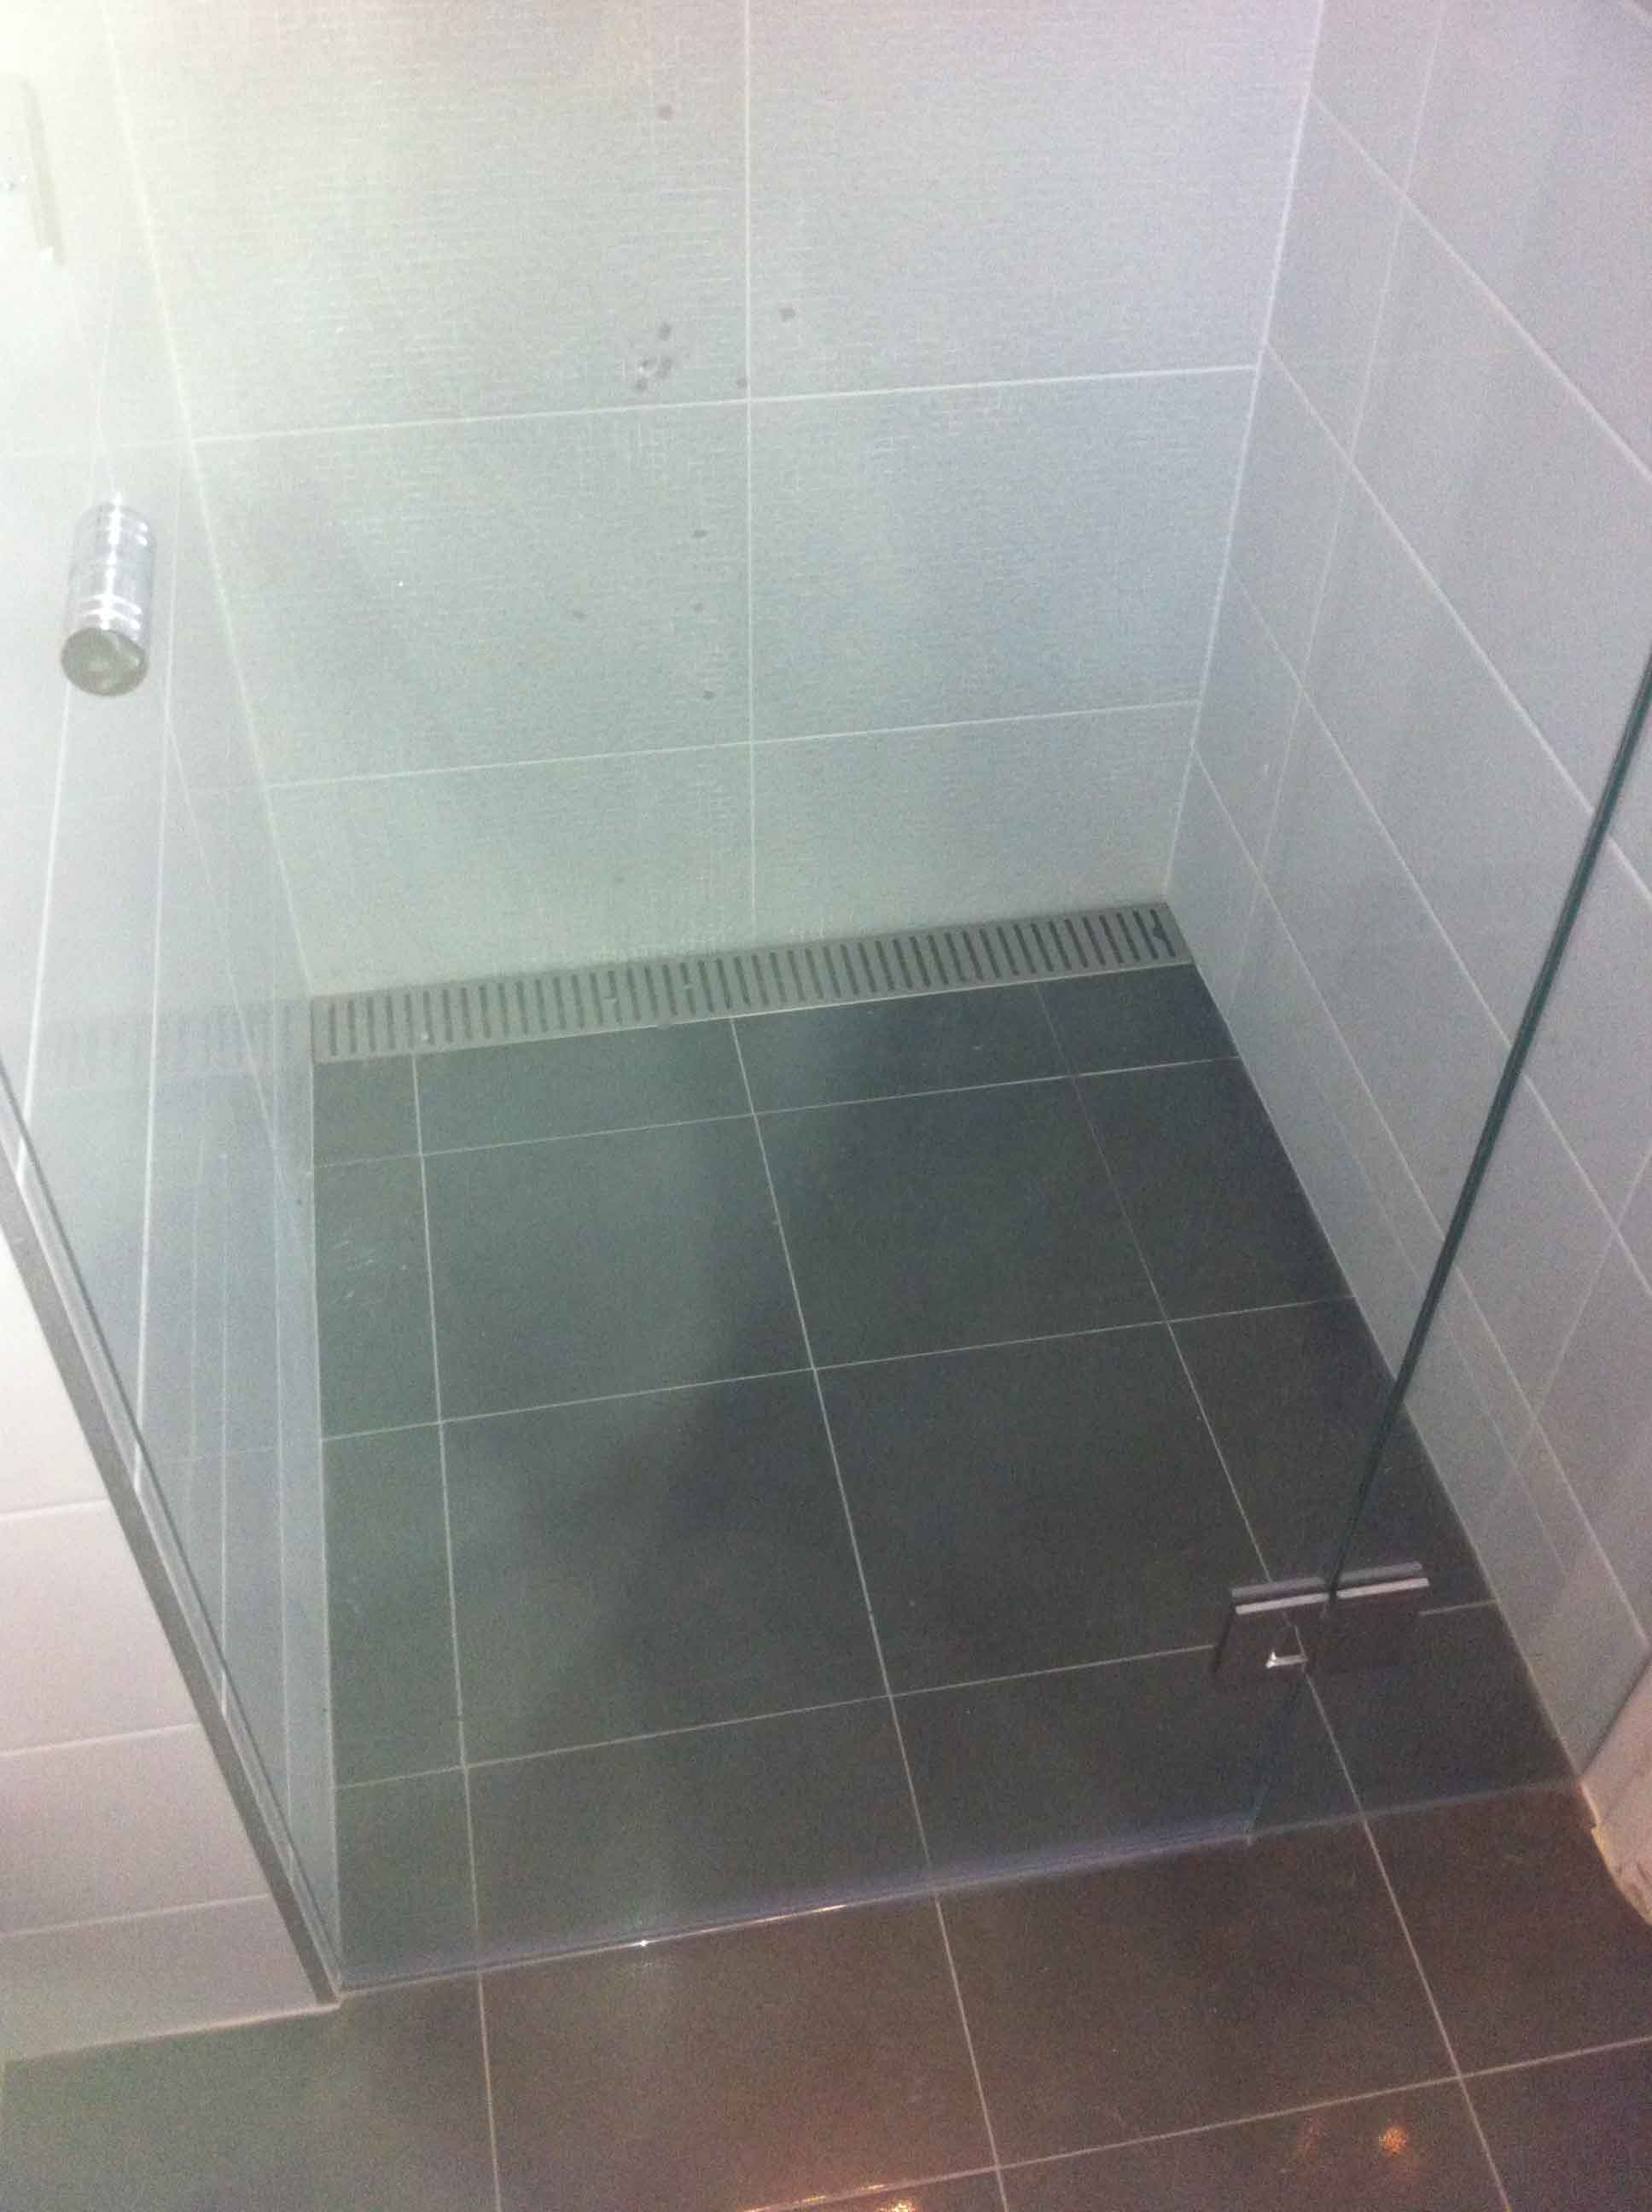 View of a bathroom floor tiling